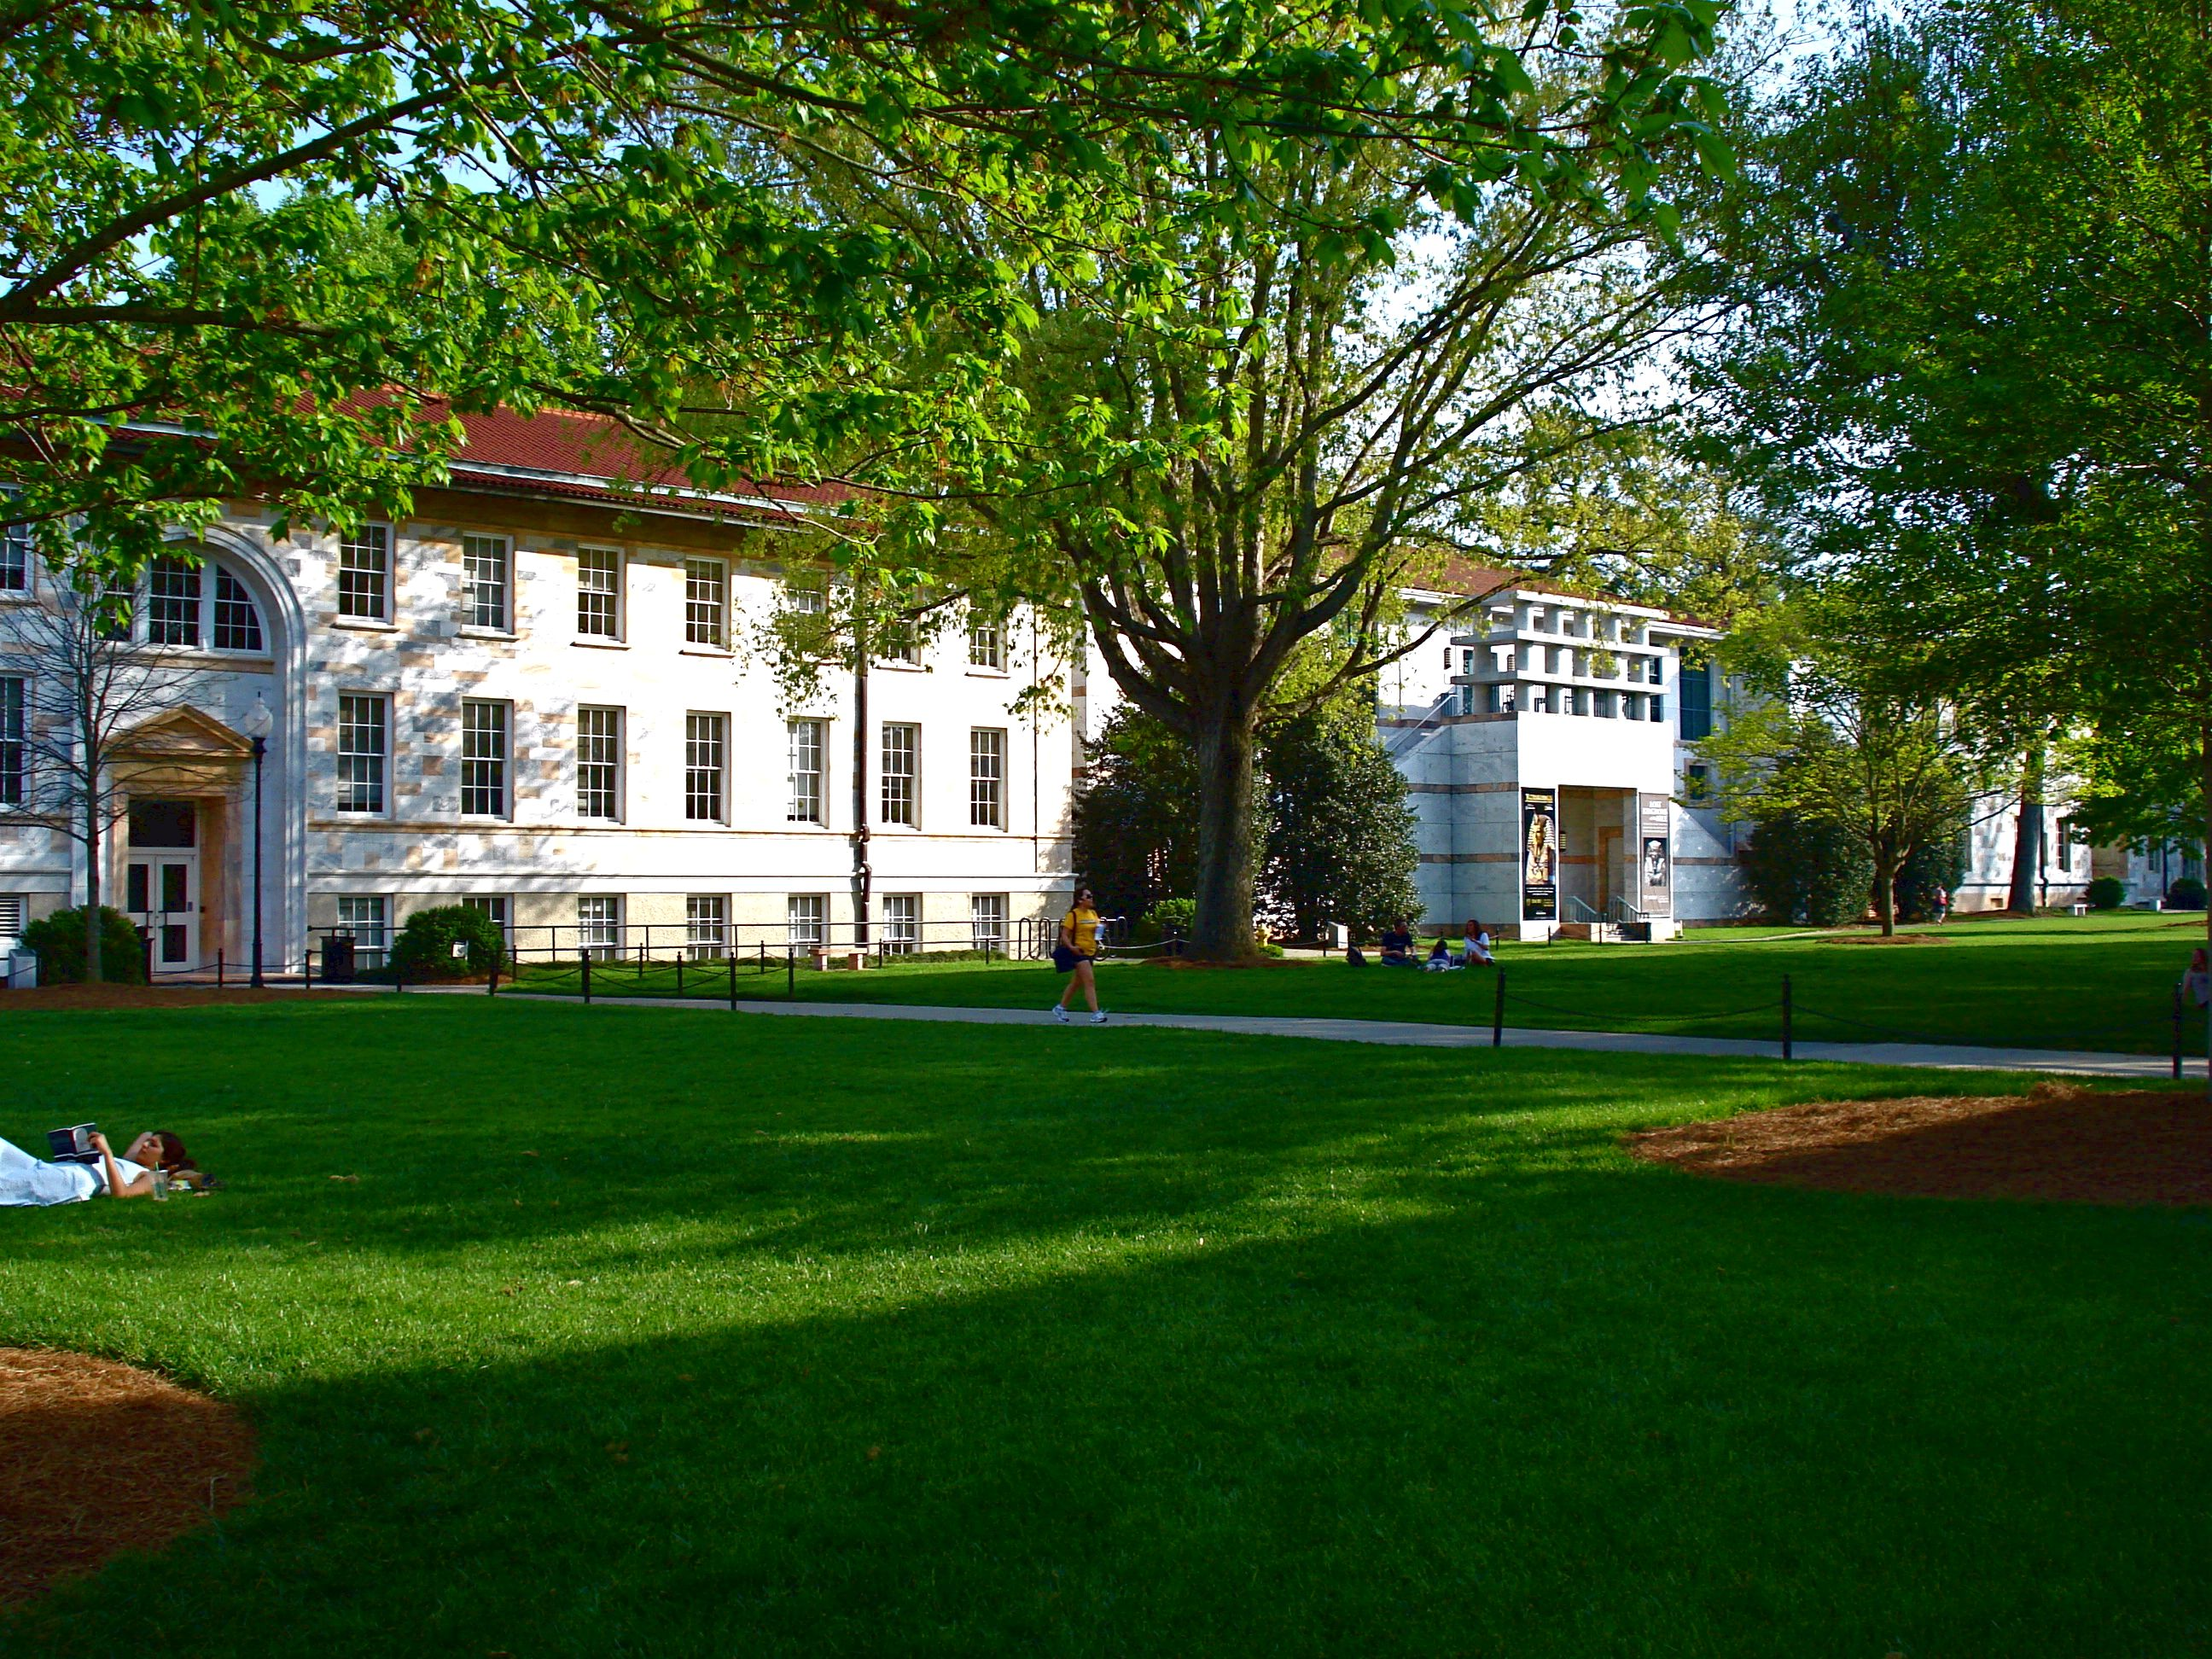 Emory college College, like